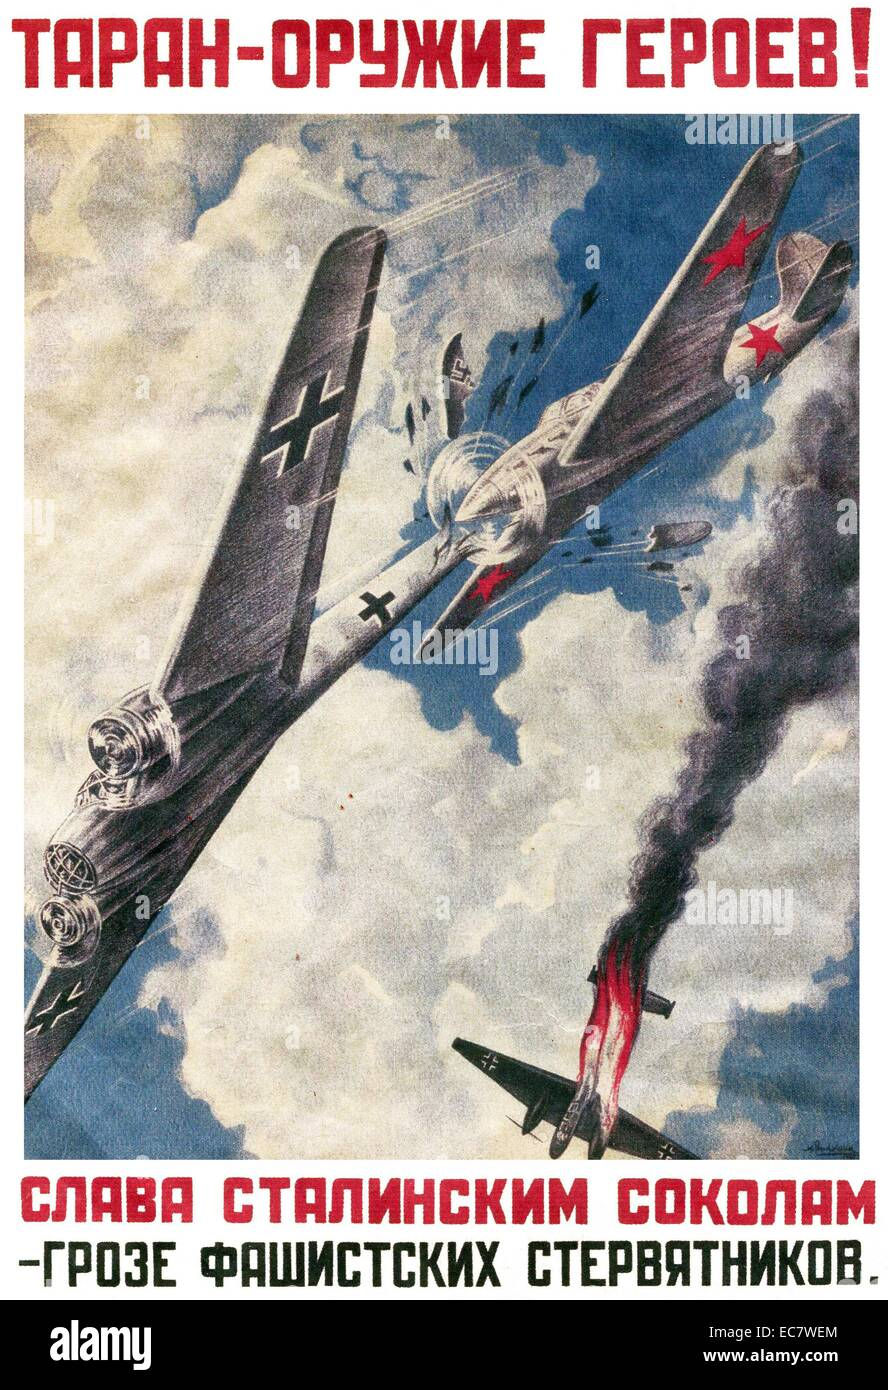 Russian propaganda poster from the Second World War - Stock Image